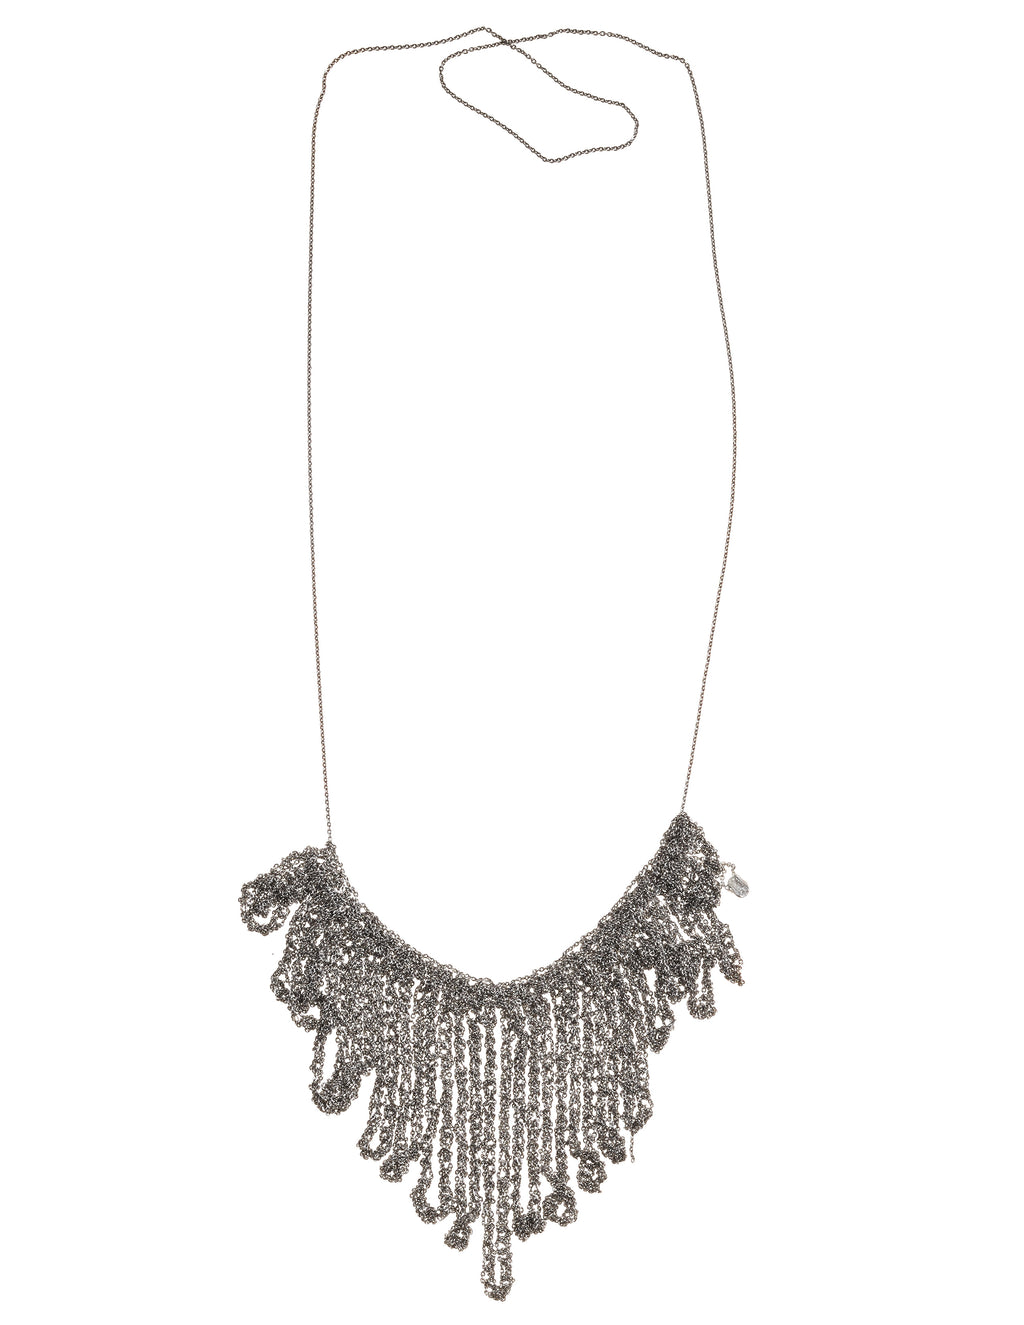 String Fringe Necklace in Faded Silver